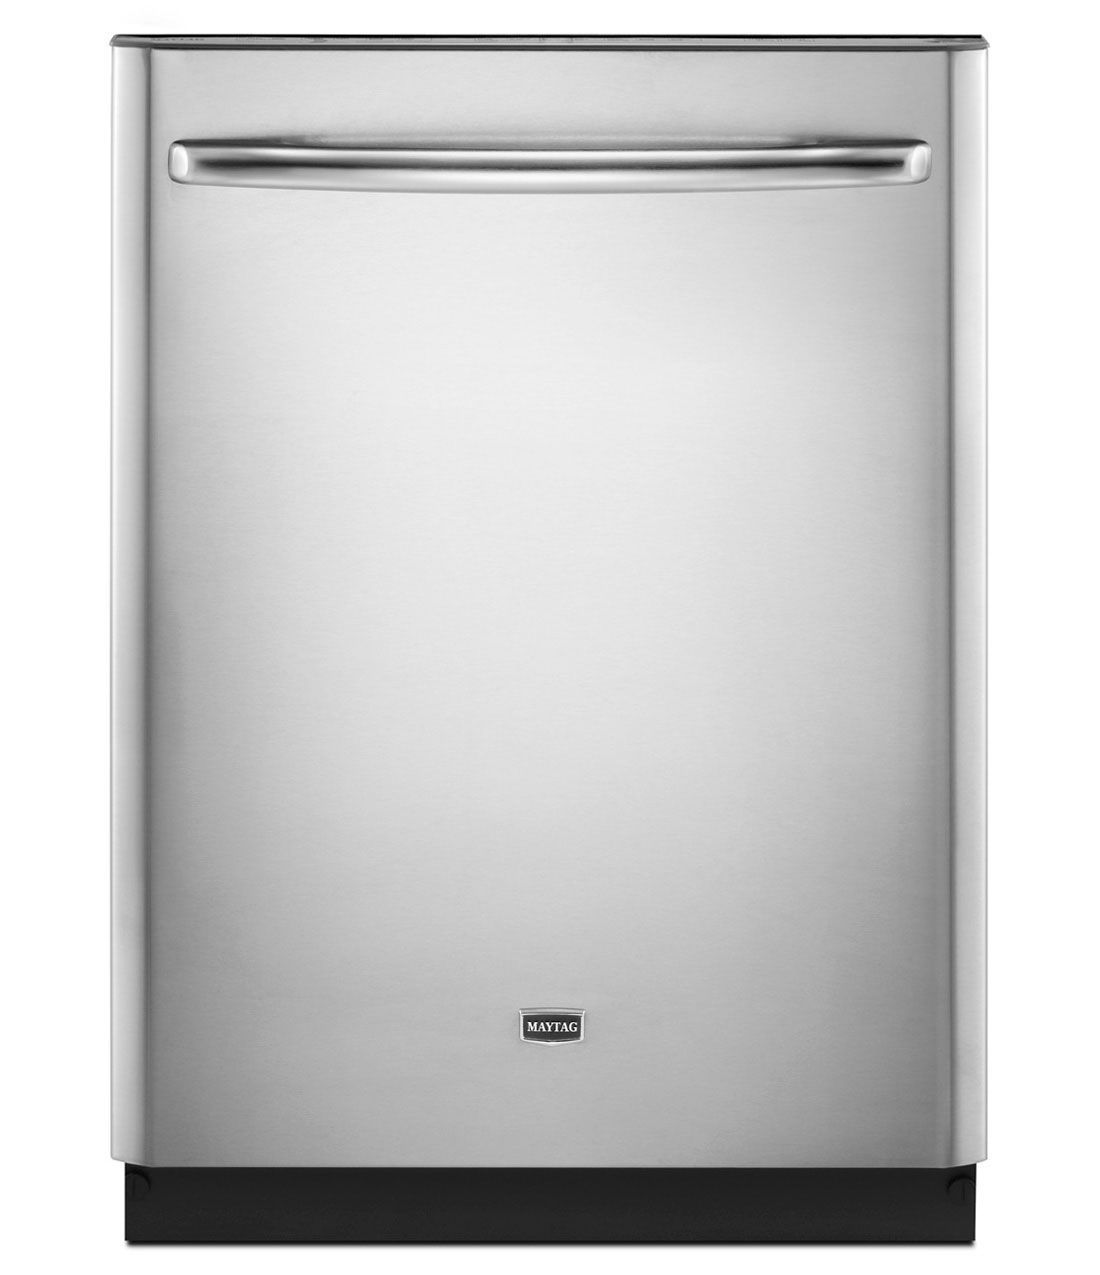 Maytag® Jetclean® Plus Dishwasher with Fully Integrated